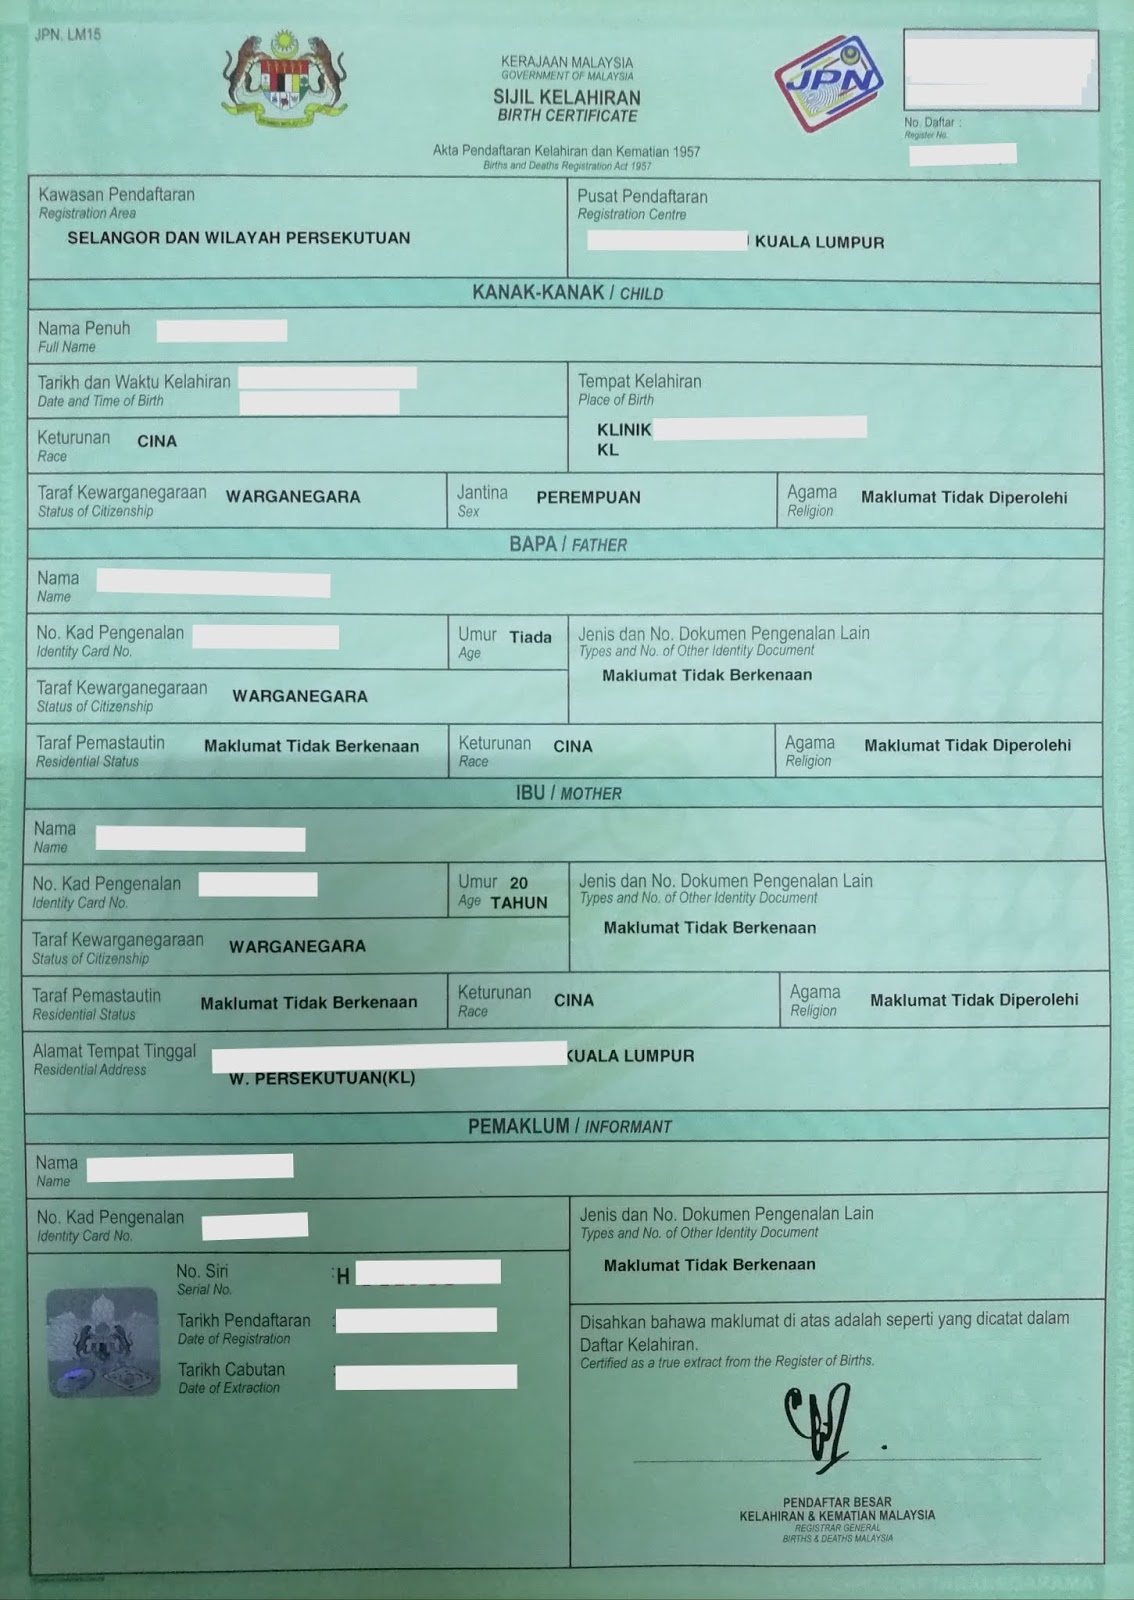 Registration of Marriage between Malaysian and Foreigner: Application for Single Status in Malaysia